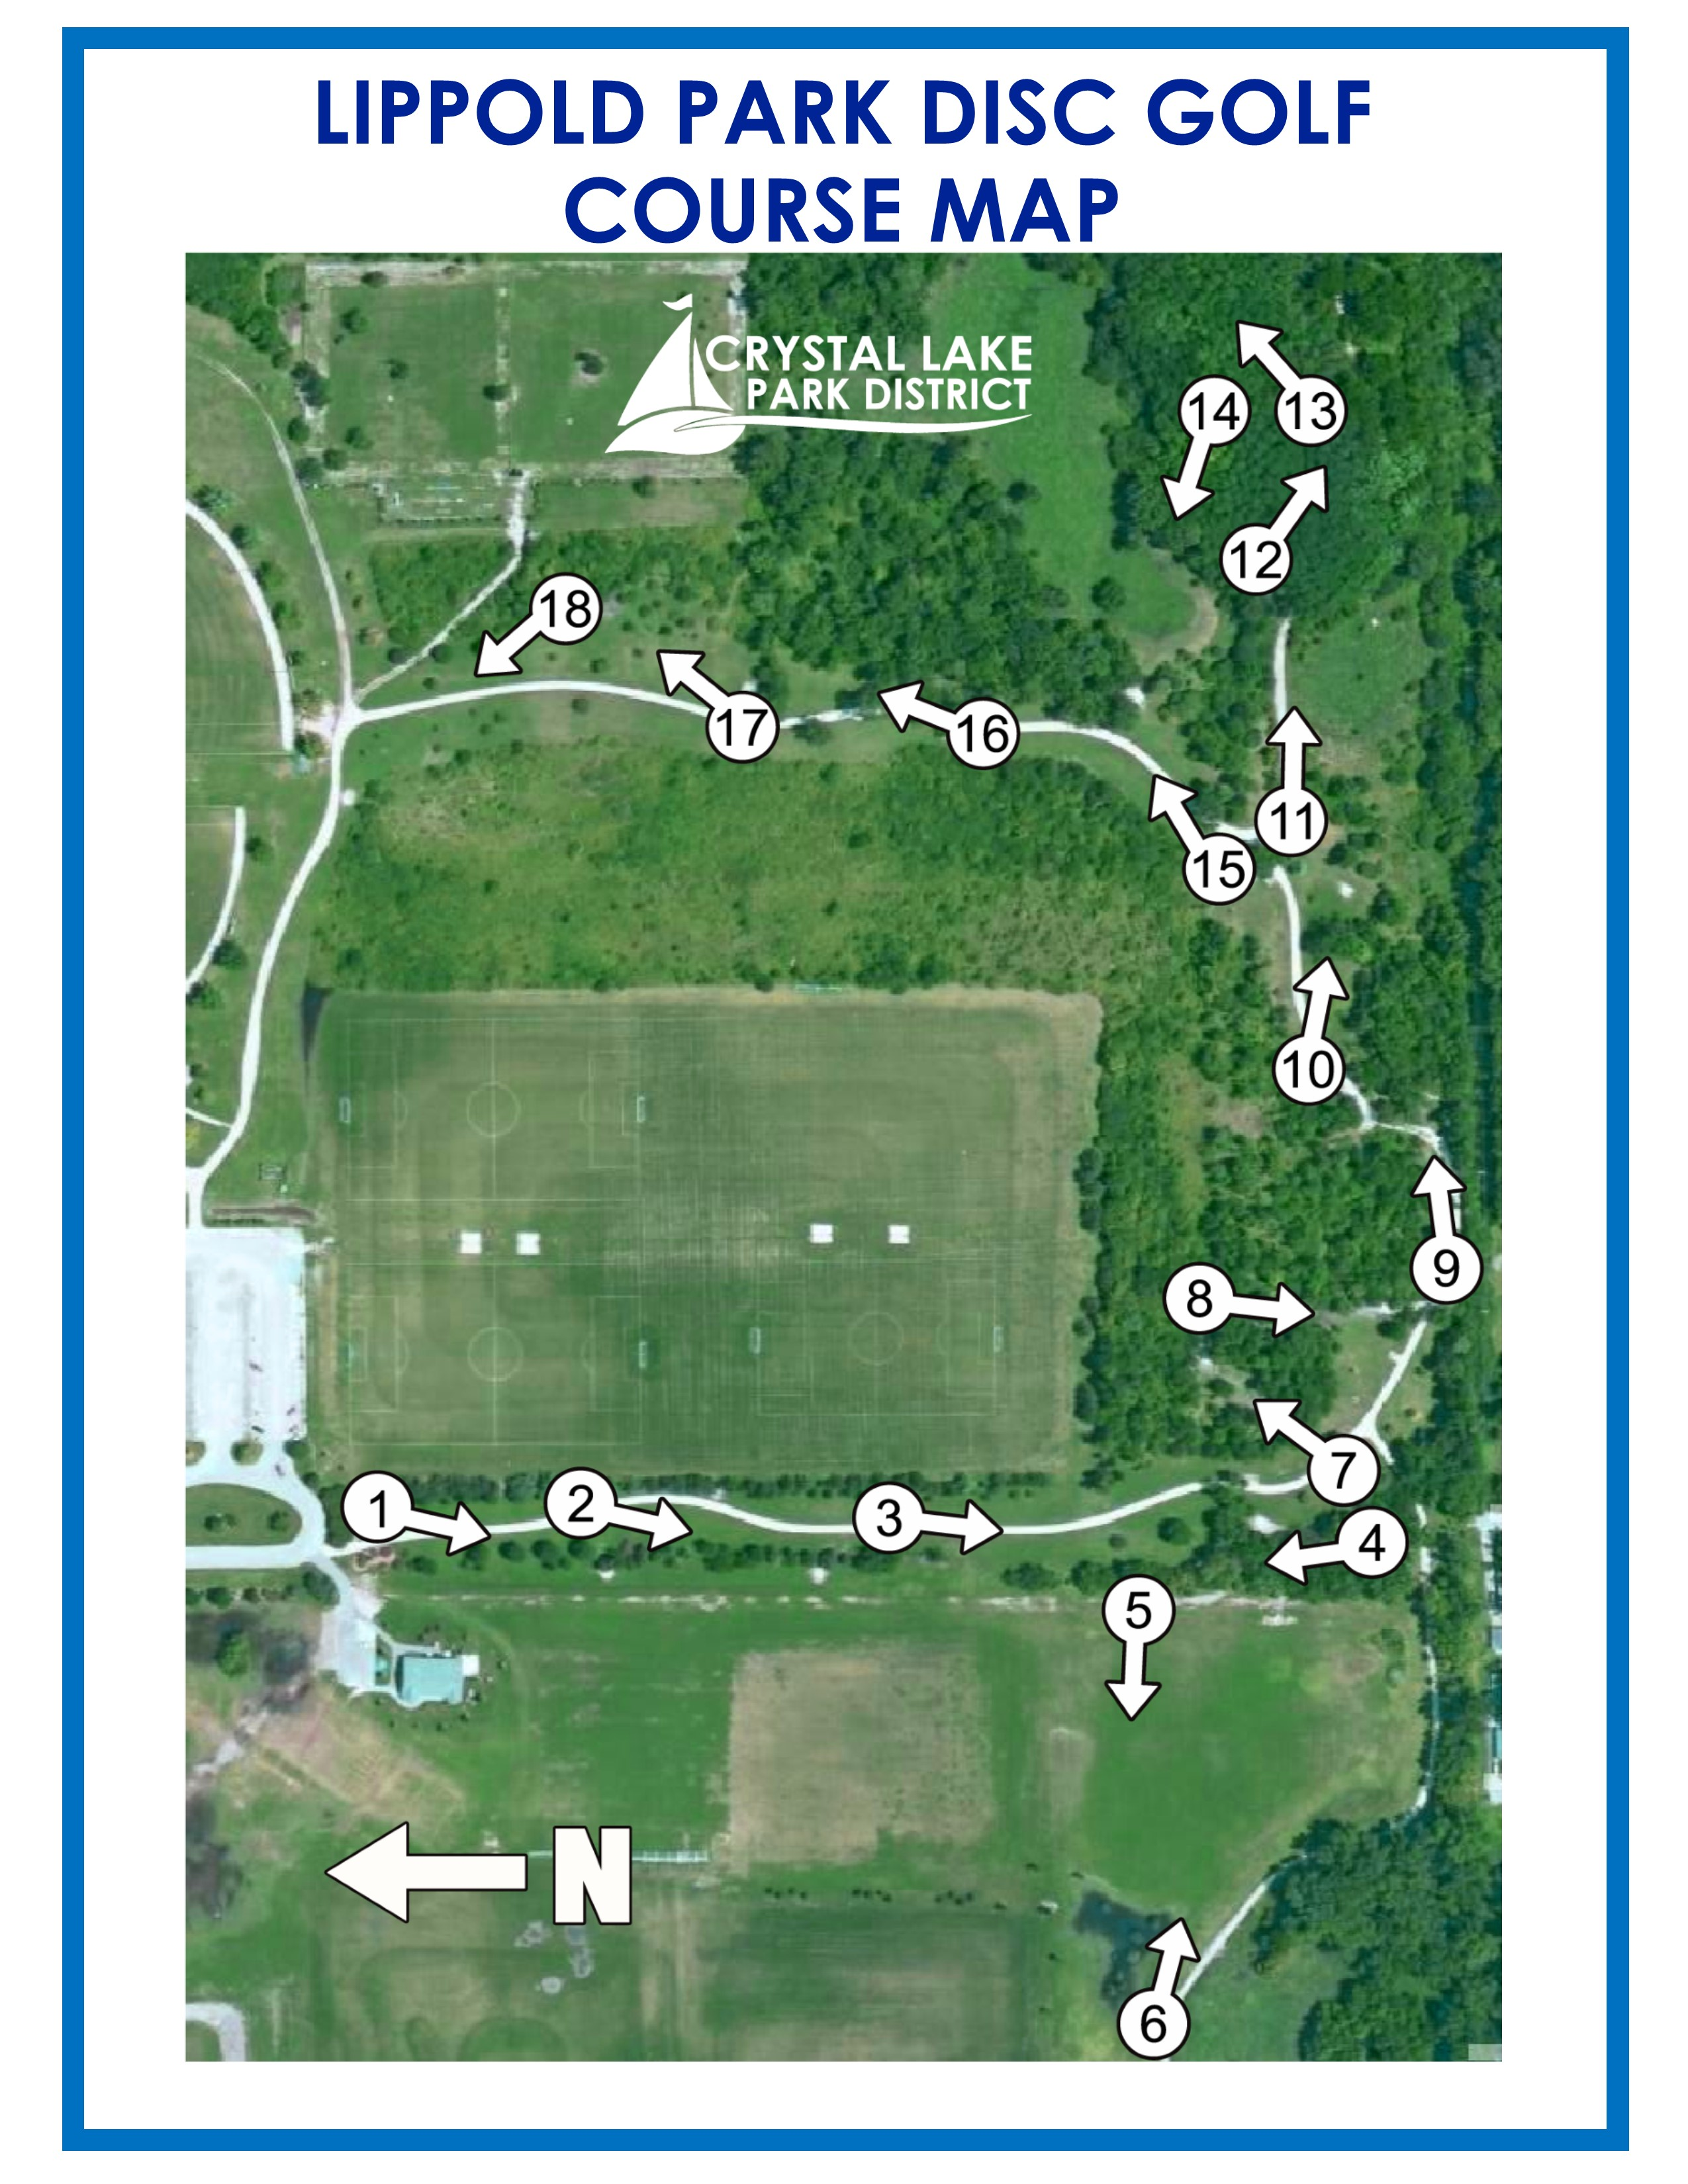 ----19 disc golf course map.jpg